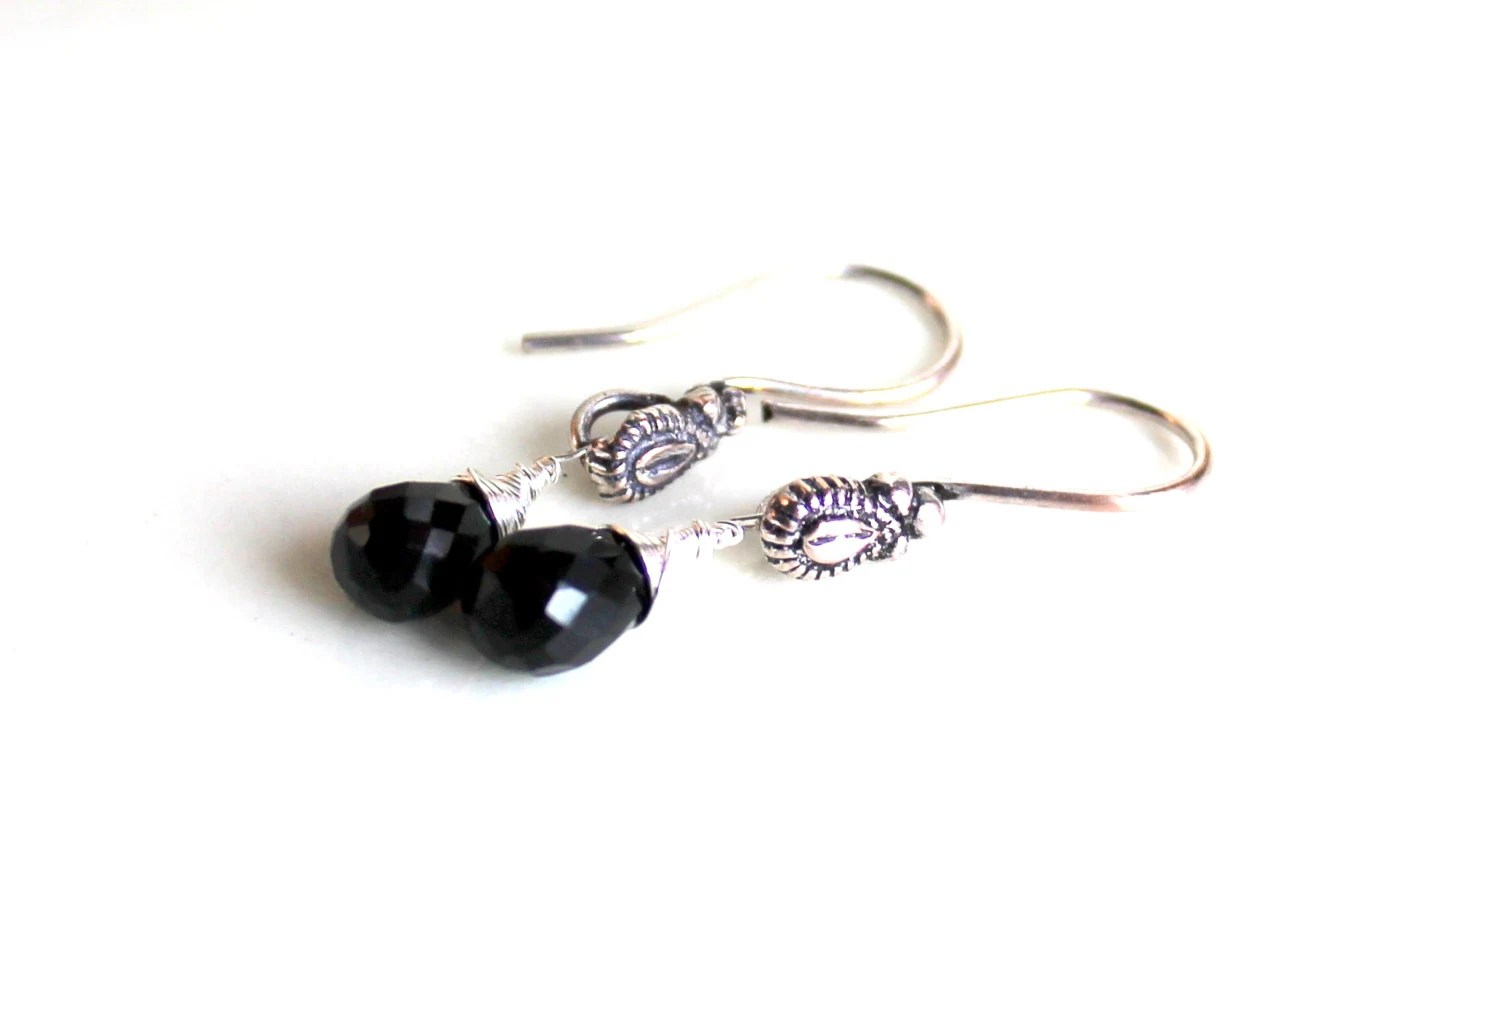 gothic onyx teardrop earrings / black onyx faceted sparkling earrings  FREE SHIPPING sterling wrapped gemstone gift - UniqueNecks